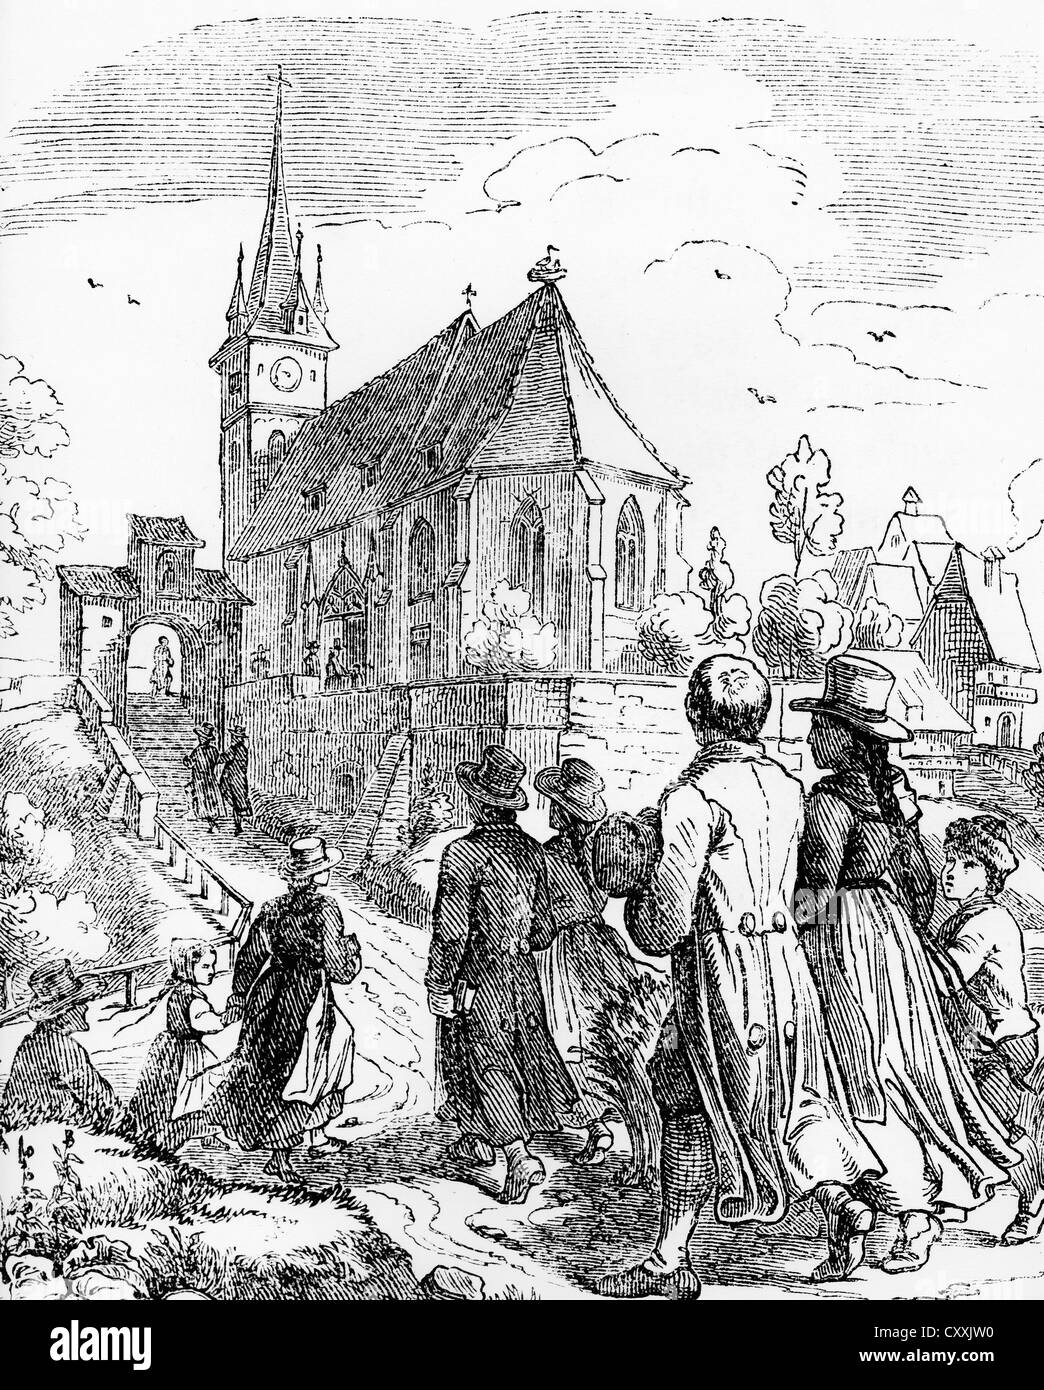 Church going on a Sunday, woodcut, c. 1900 - Stock Image